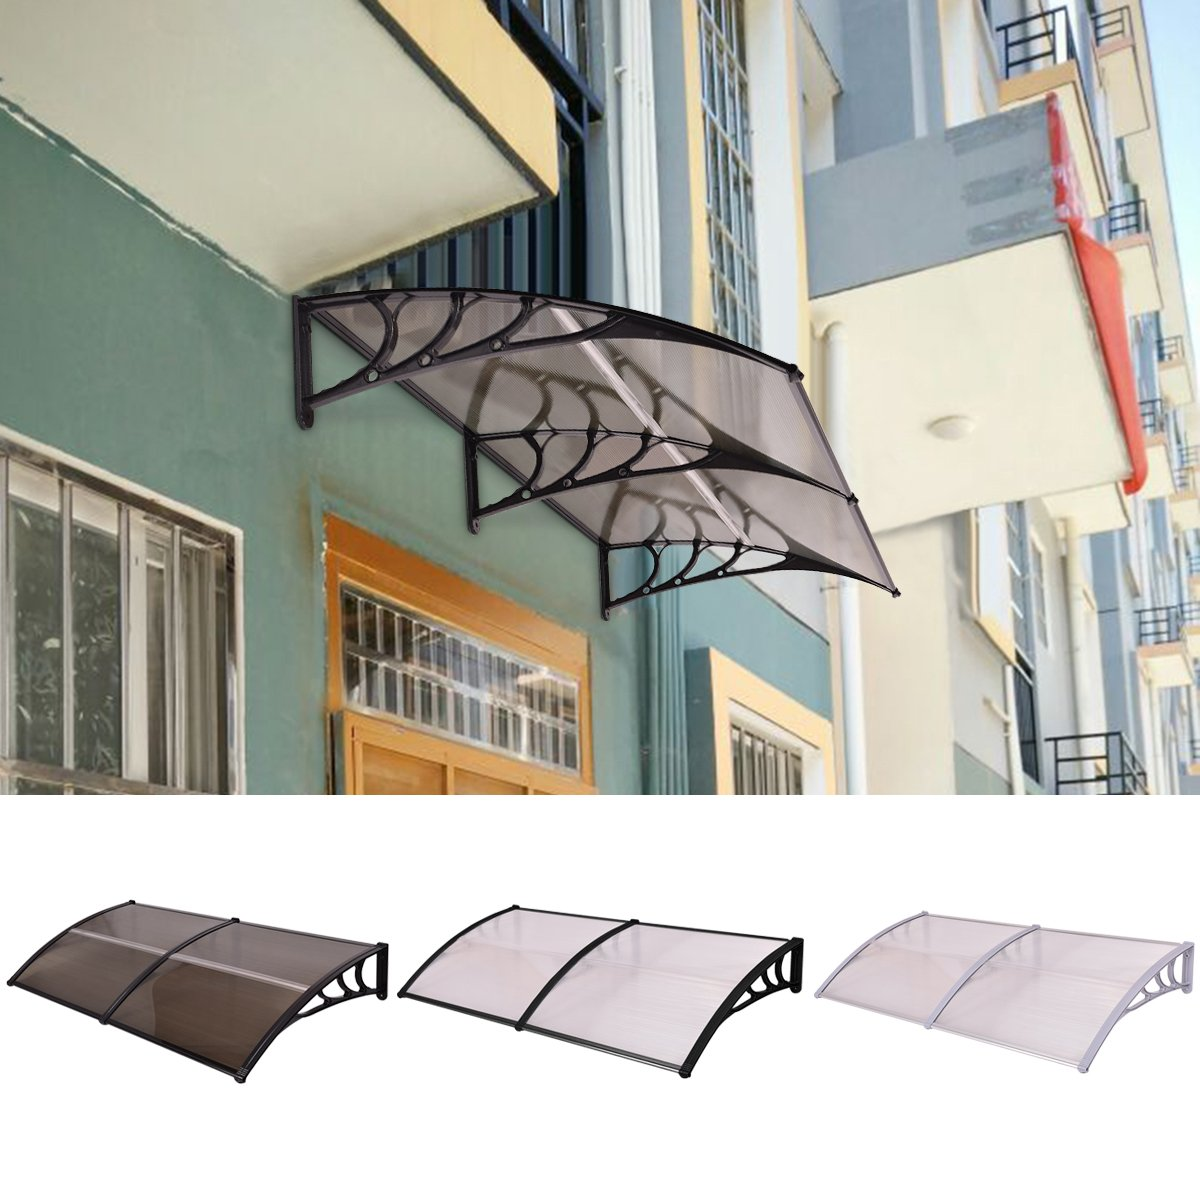 Costway Door Canopy Awning Shelter Front Back Porch Window Roof Sun Shade Outdoor 100 x 100CM/200 x 100CM (200 x 100 CM, Clear + Gray)